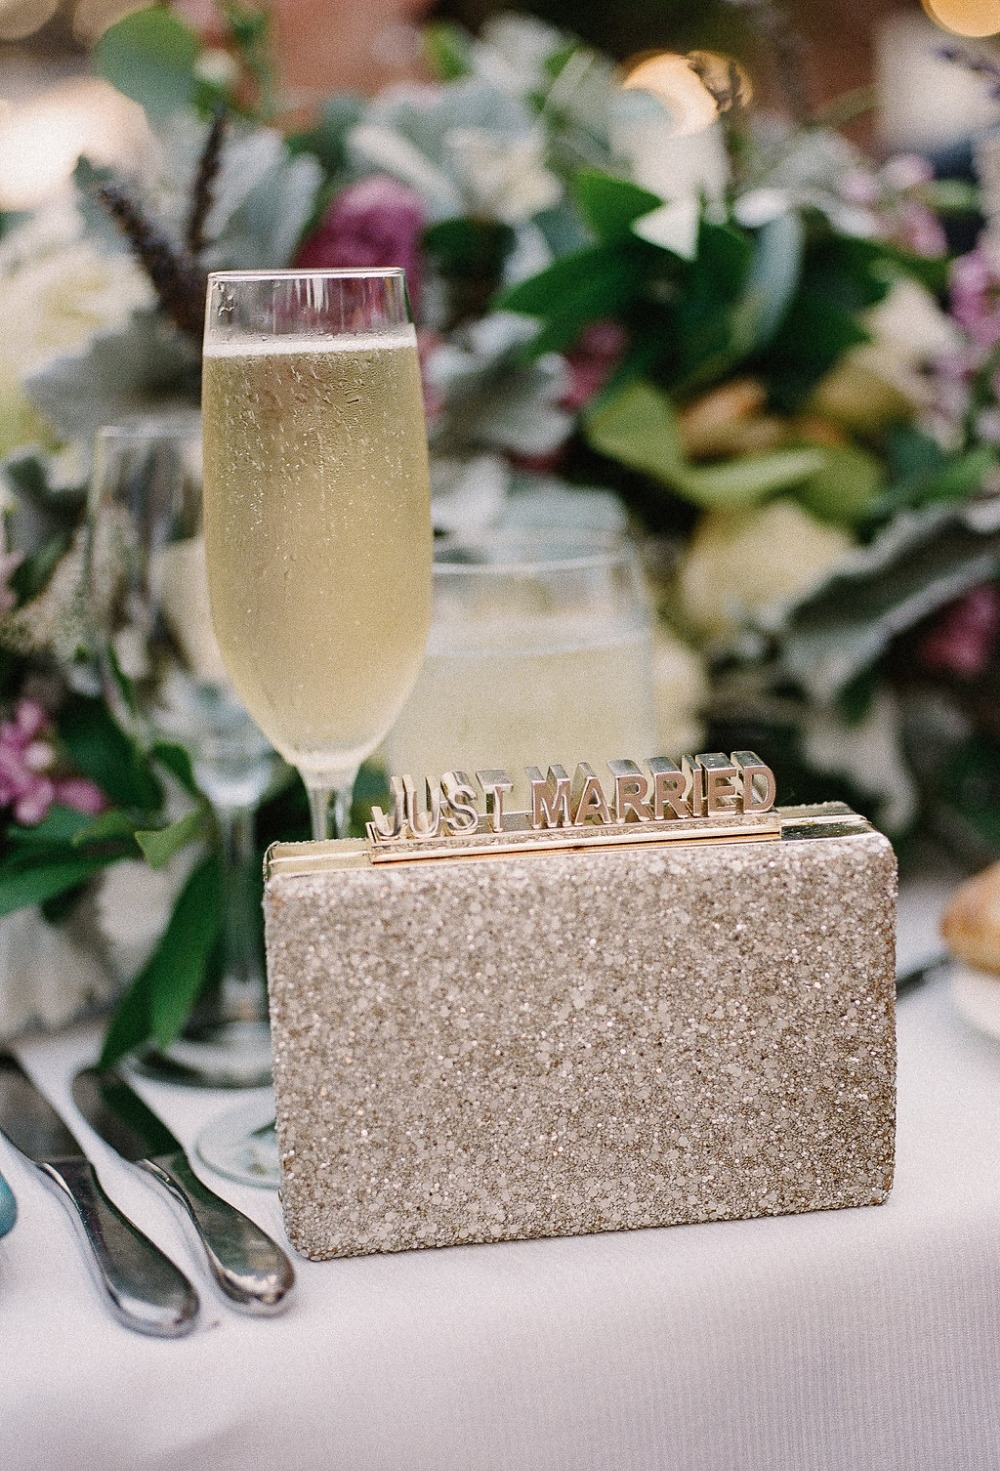 Sparkly gold just married clutch